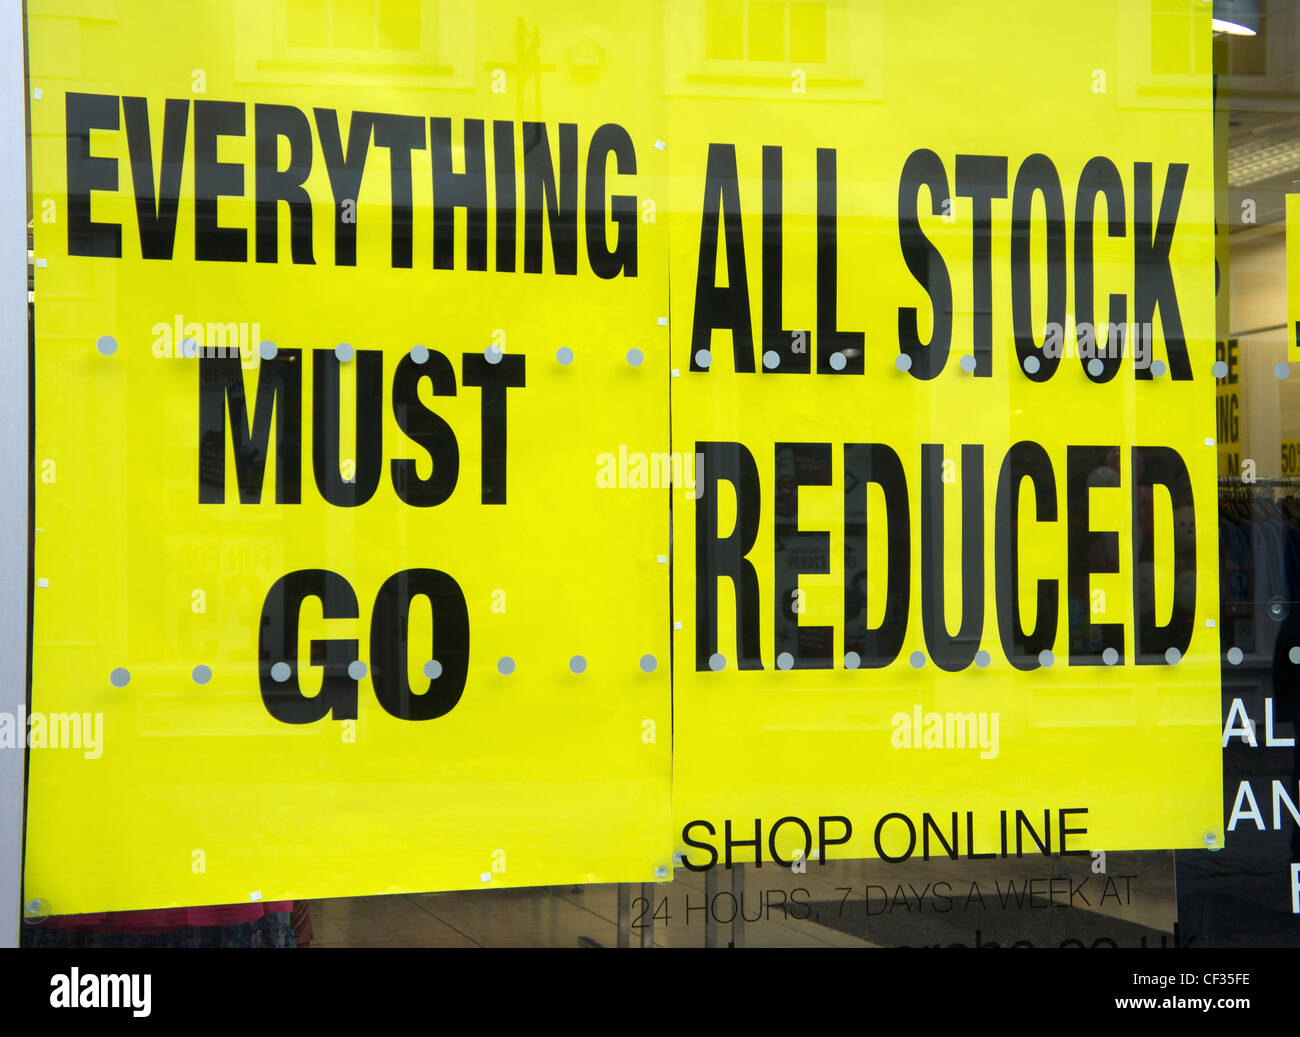 Sale signs in a shop window, UK - Stock Image